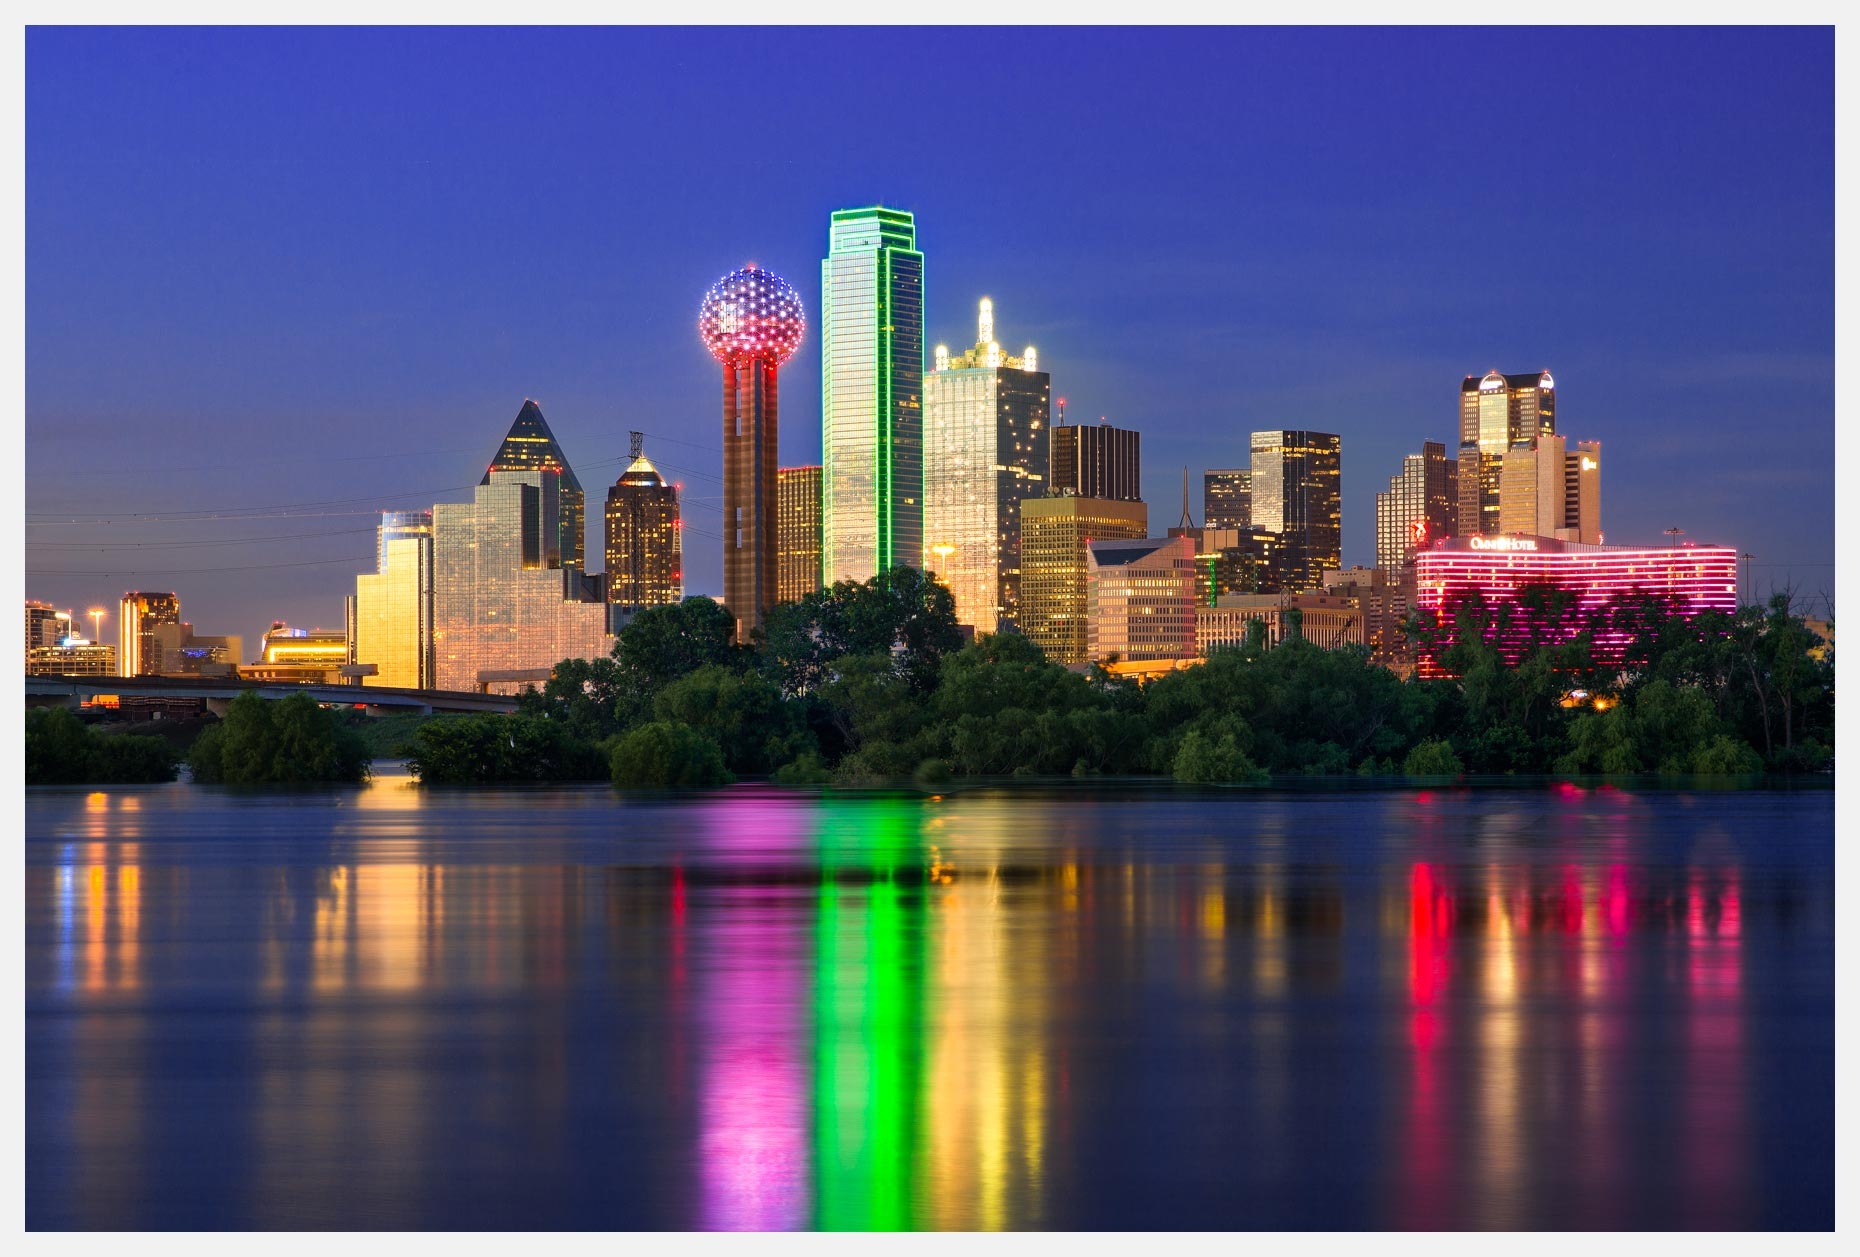 Dallas Skyline With Reflection in River Cityscape